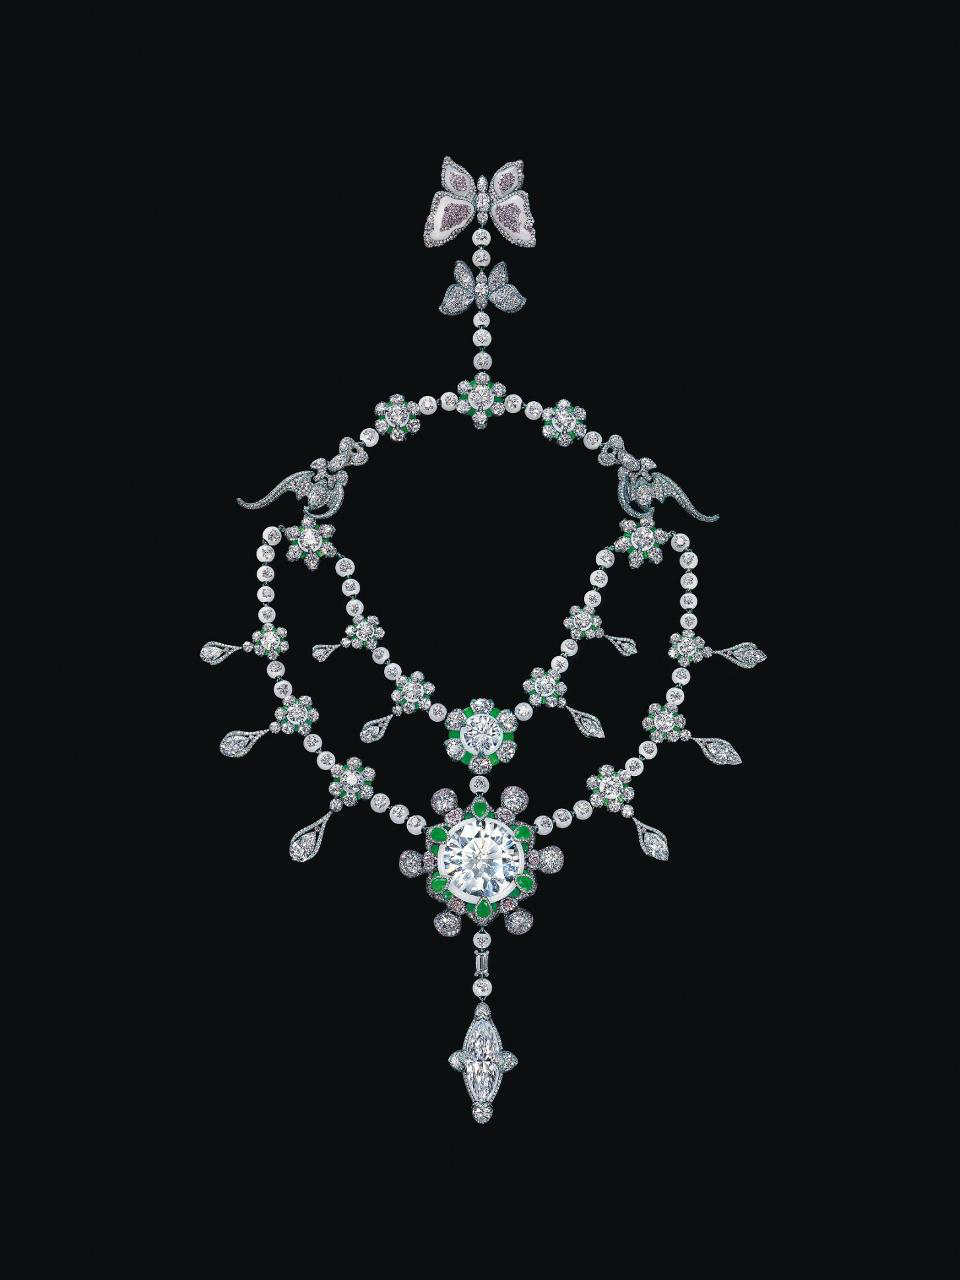 "bce85ba2a Chinese master craftsman Wallace Chan has designed this jewelry masterpiece  named ""A Heritage in Bloom"" which is estimated to be worth a sky-high  200  ..."